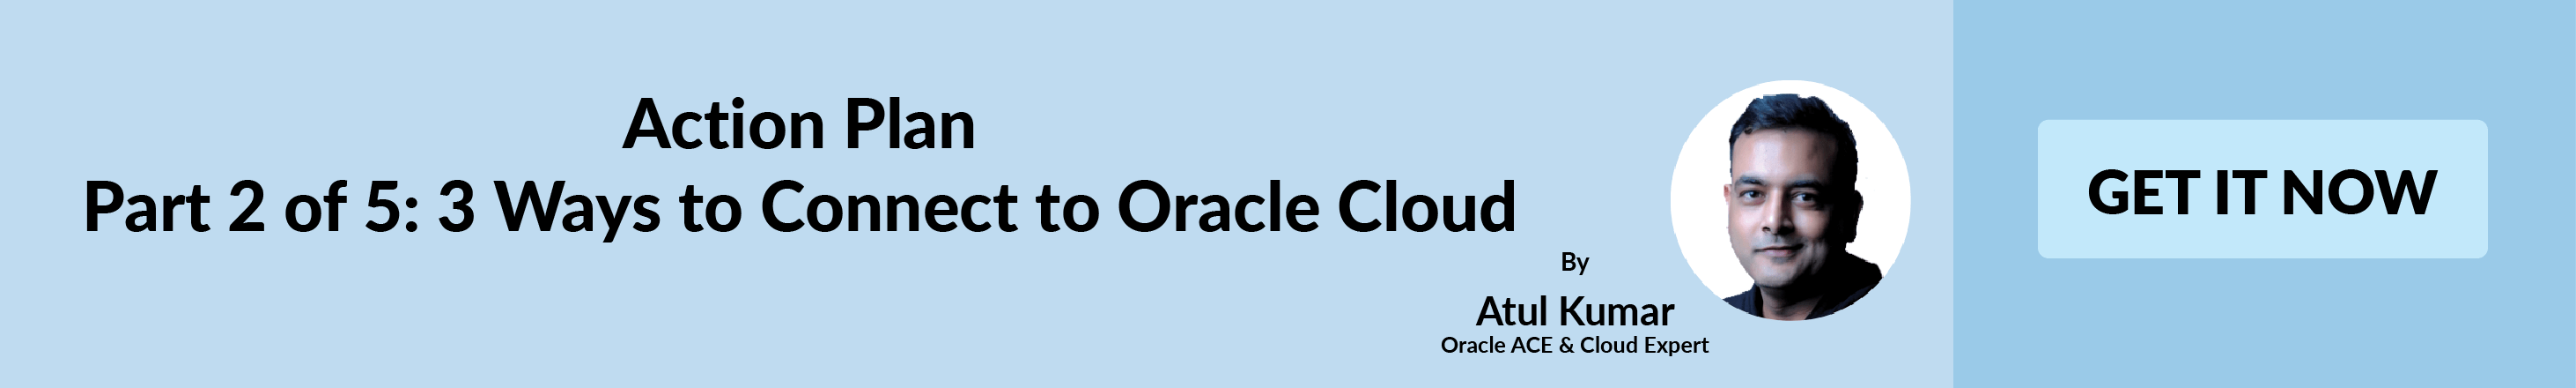 Action Plan to connect to Oracle Cloud